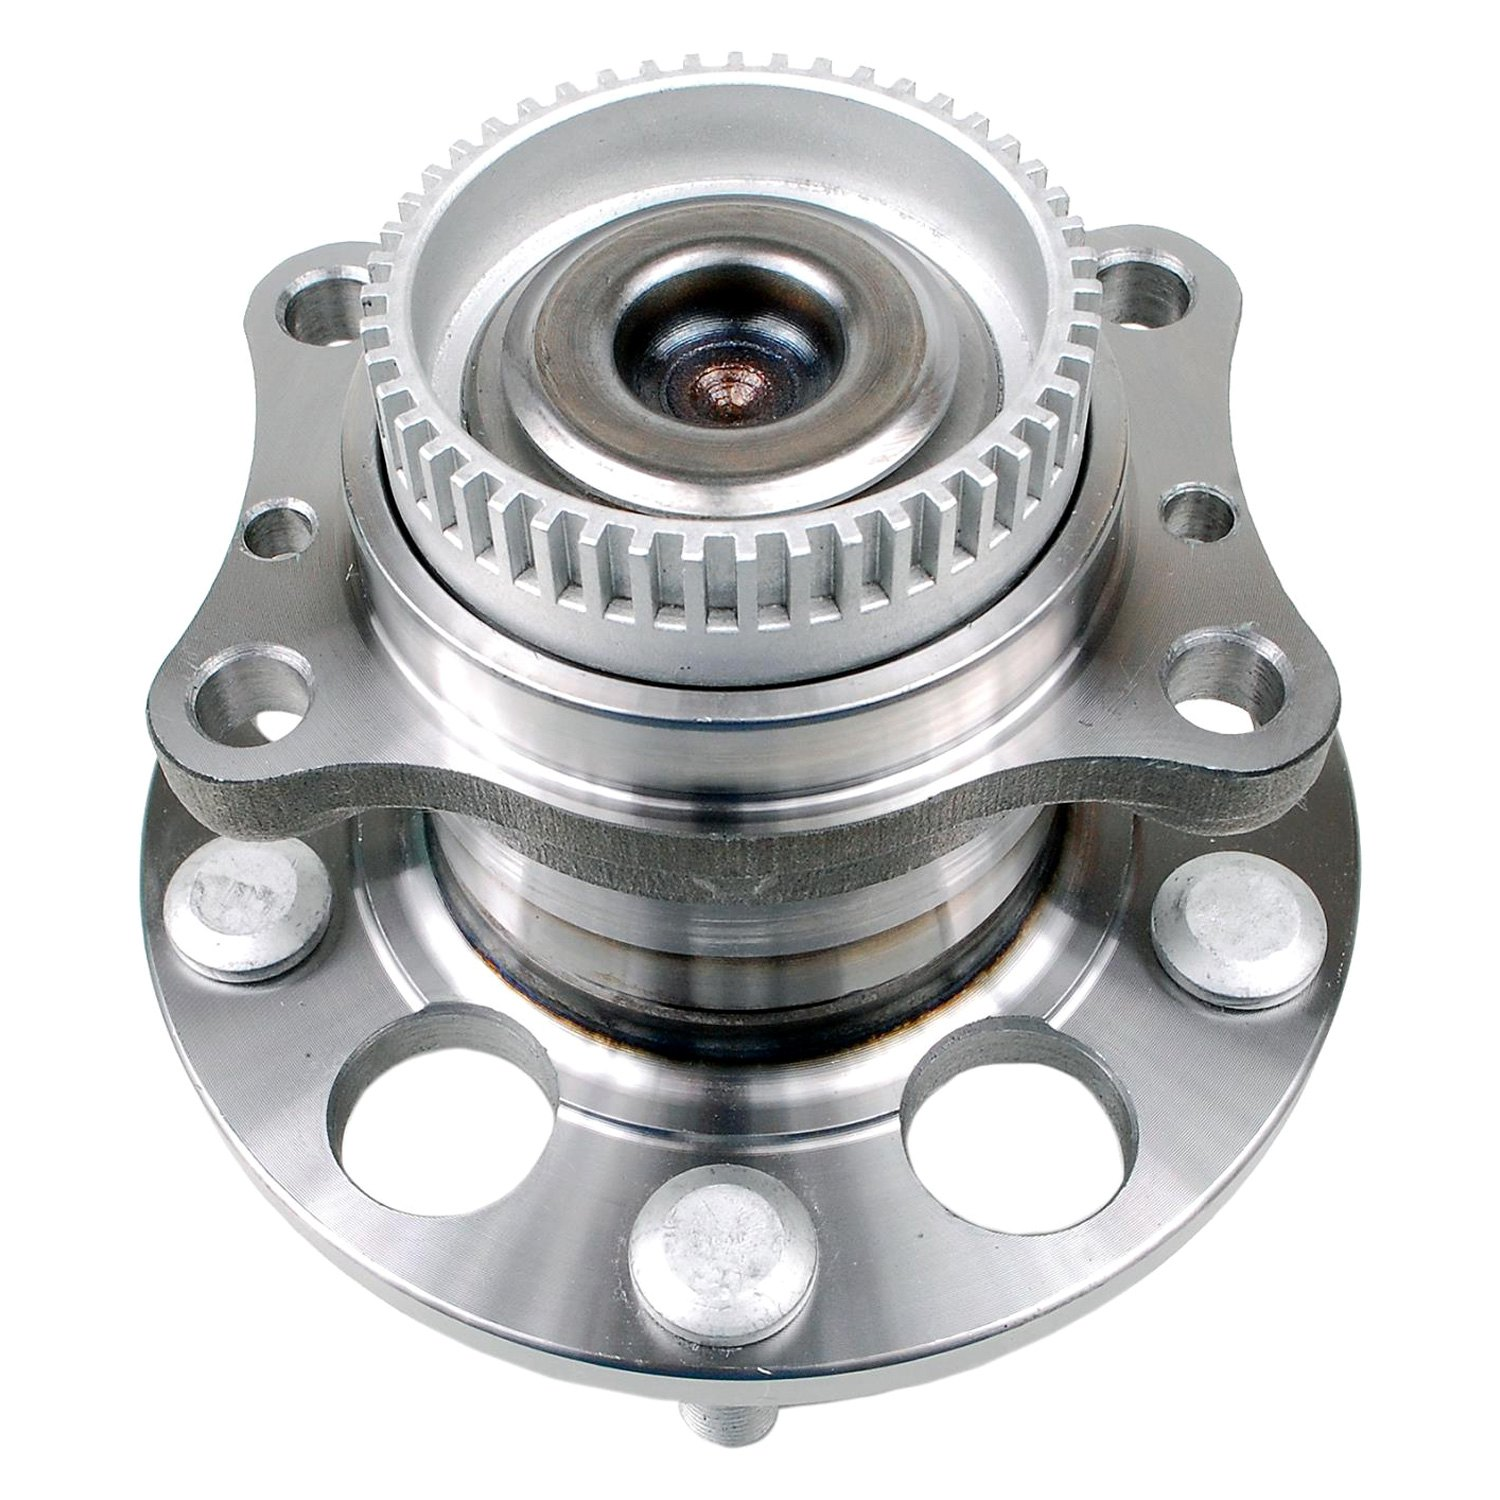 Kia Forte: Front Hub Knuckle Reassembly